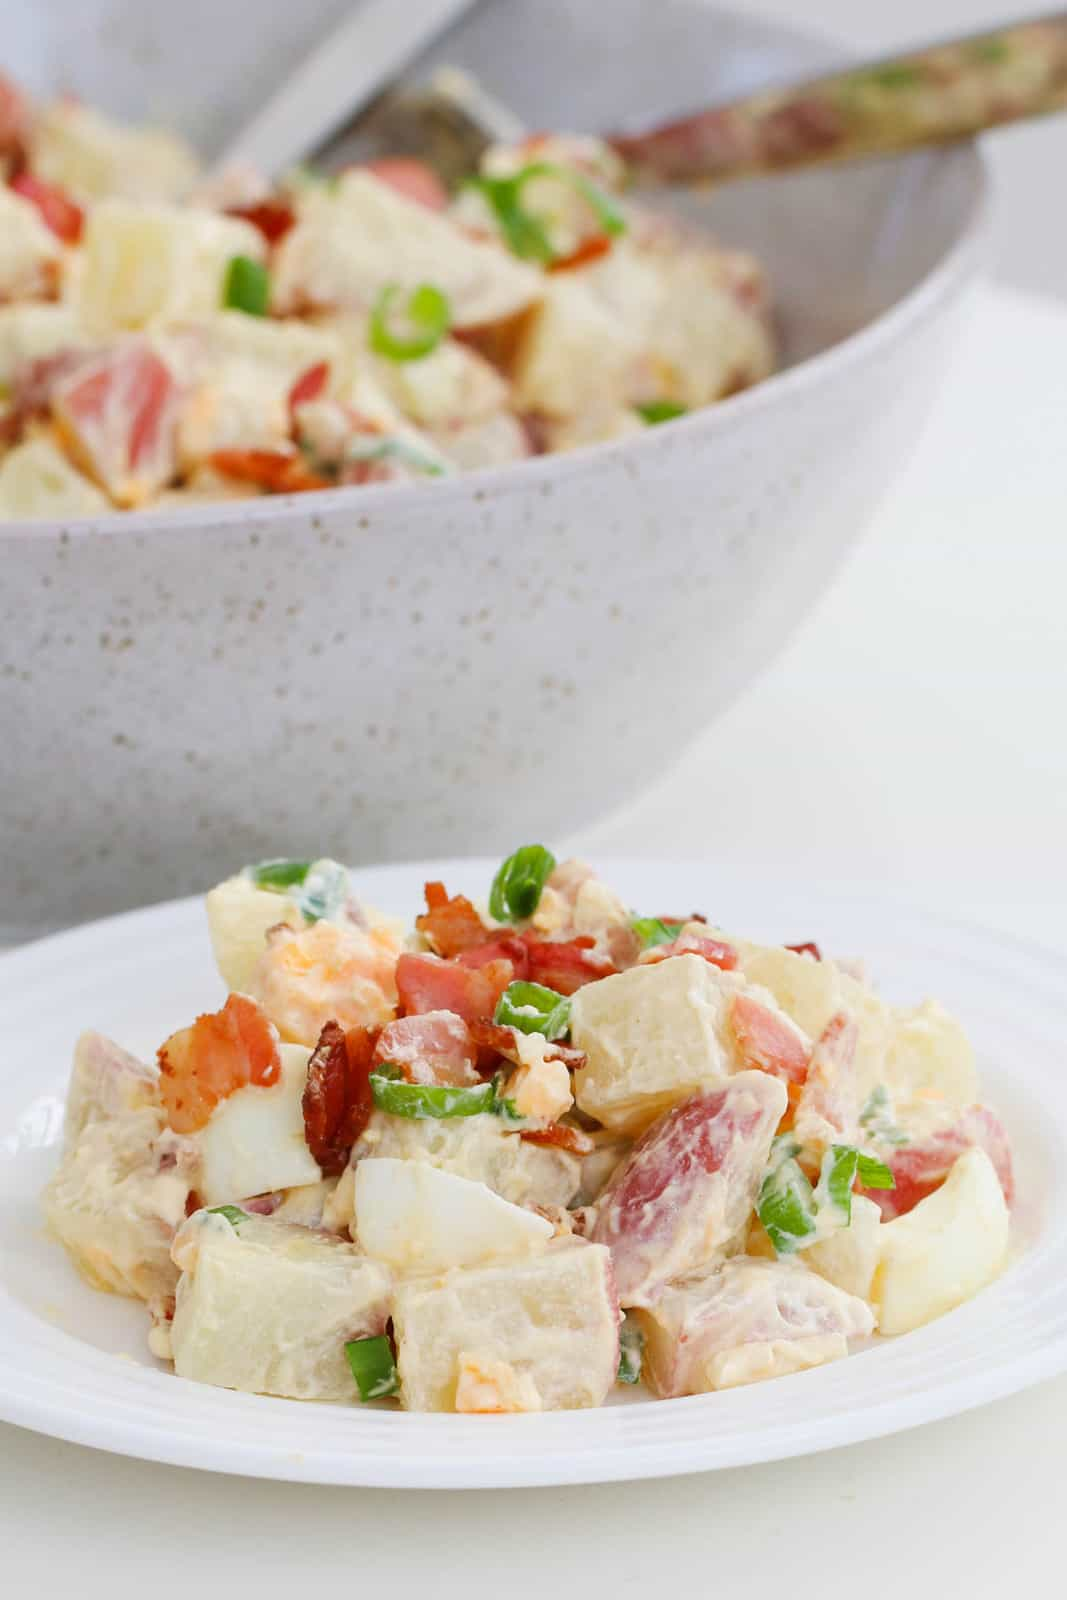 A plate of potato salad with egg, bacon and spring onions, and a bowl of potato salad in the background